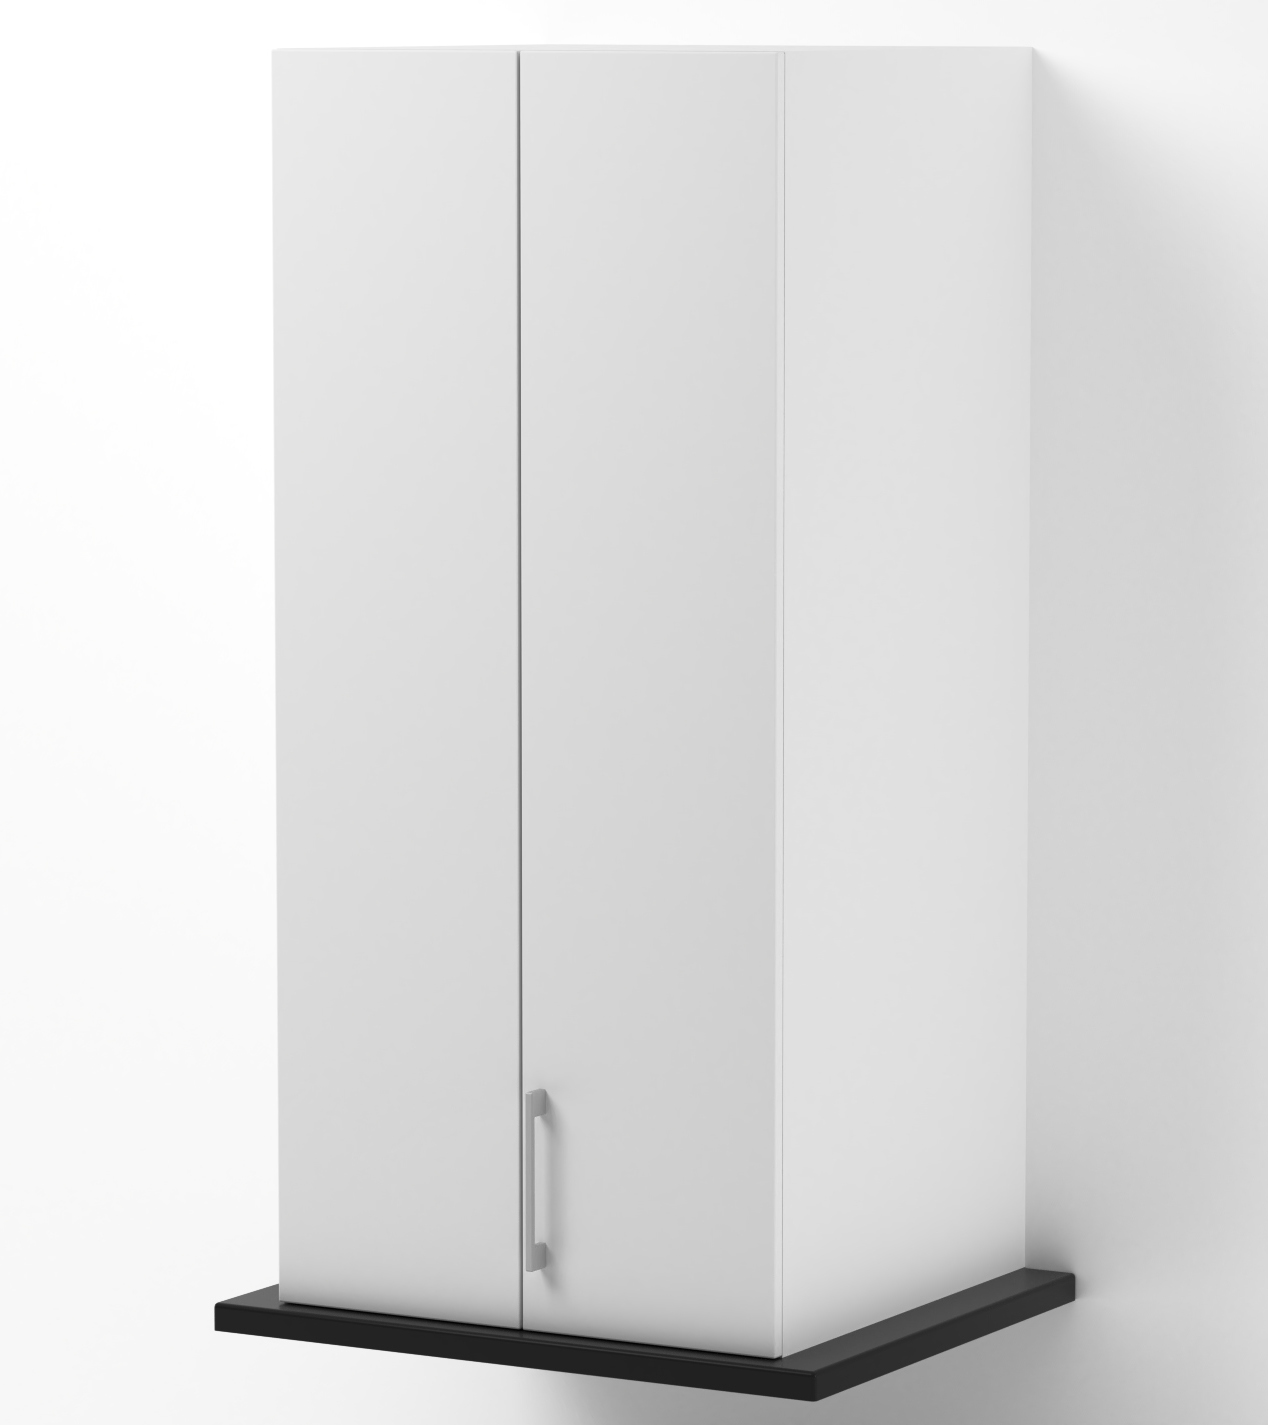 Milan - 600mm wide 580mm Deep On Bench Pantry Cabinet